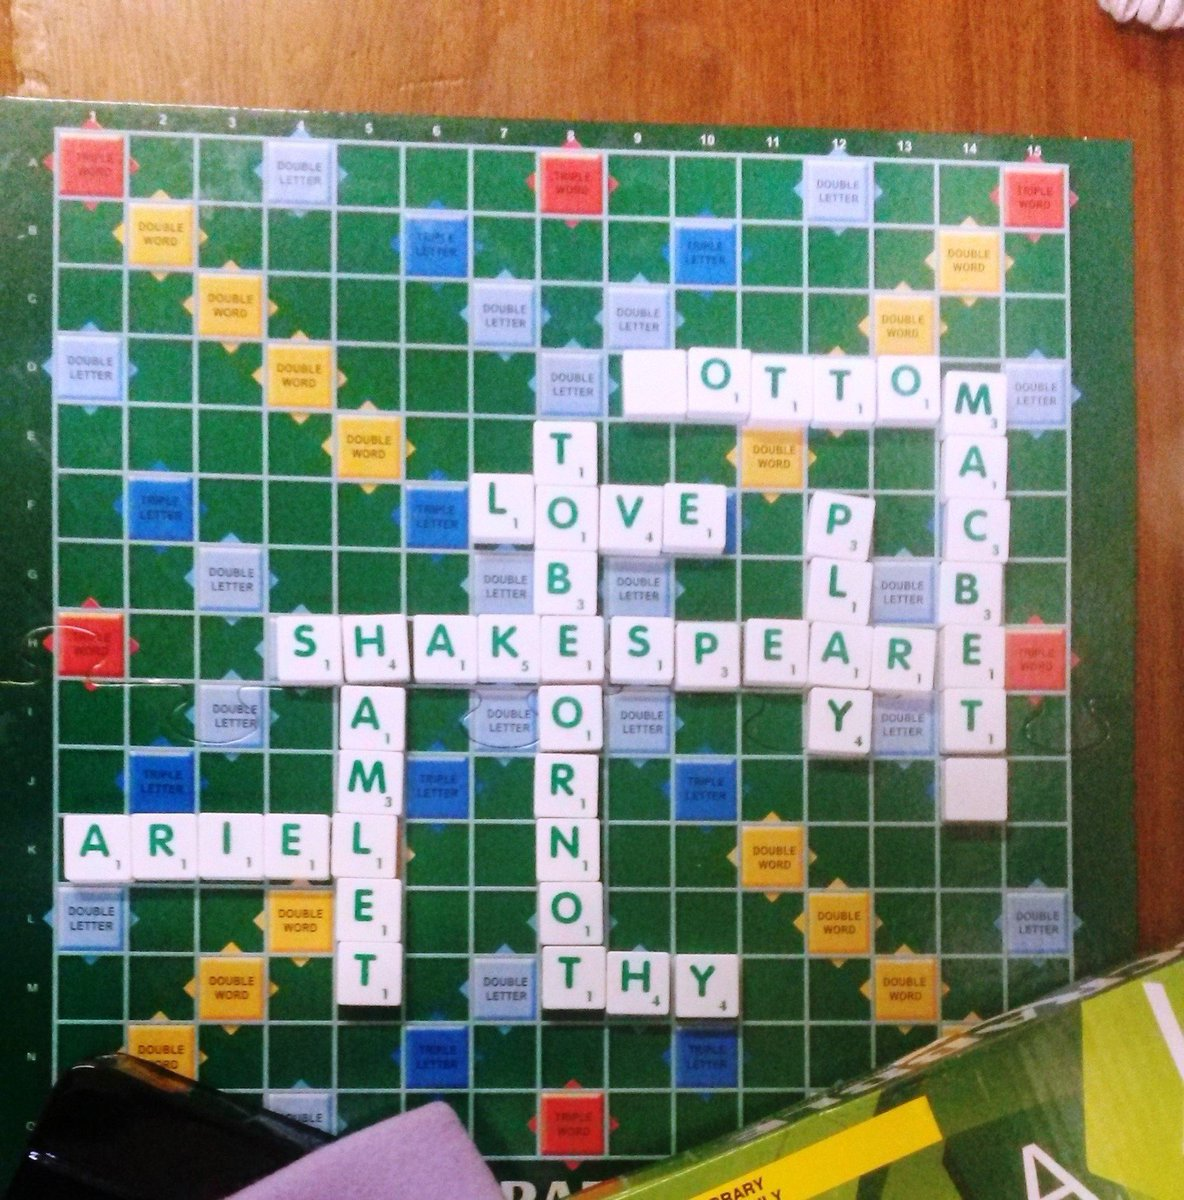 The Saturday Scrabble Club at Great Baddow Library with their own tribute to the Bard! #Shakespeare16 https://t.co/rvSYa7ACfT